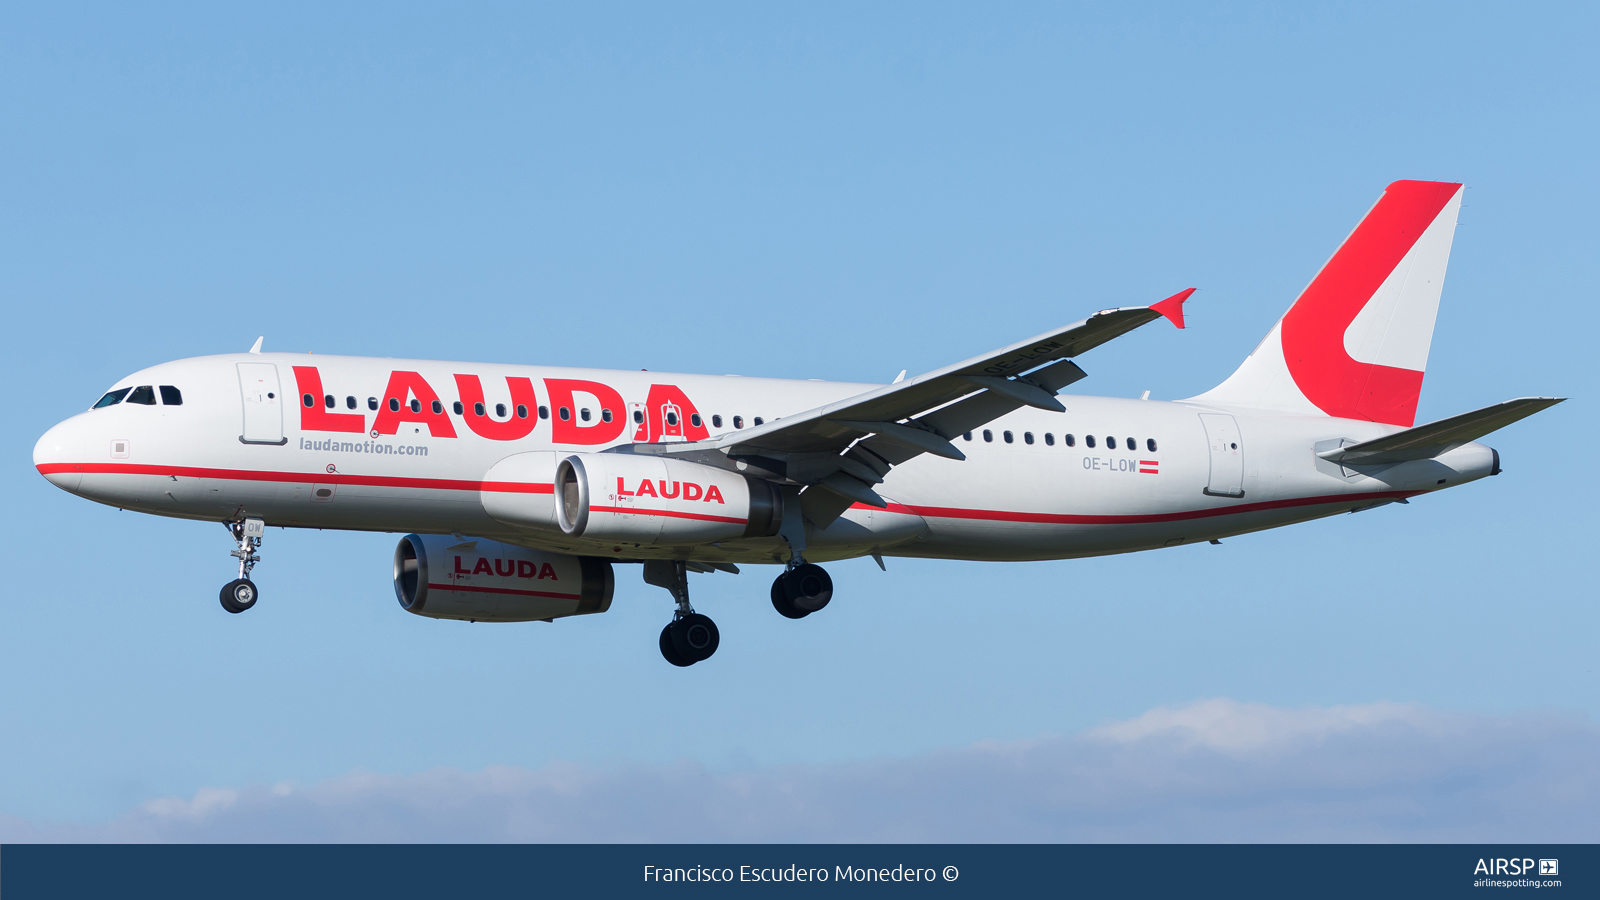 Laudamotion  Airbus A320  OE-LOW